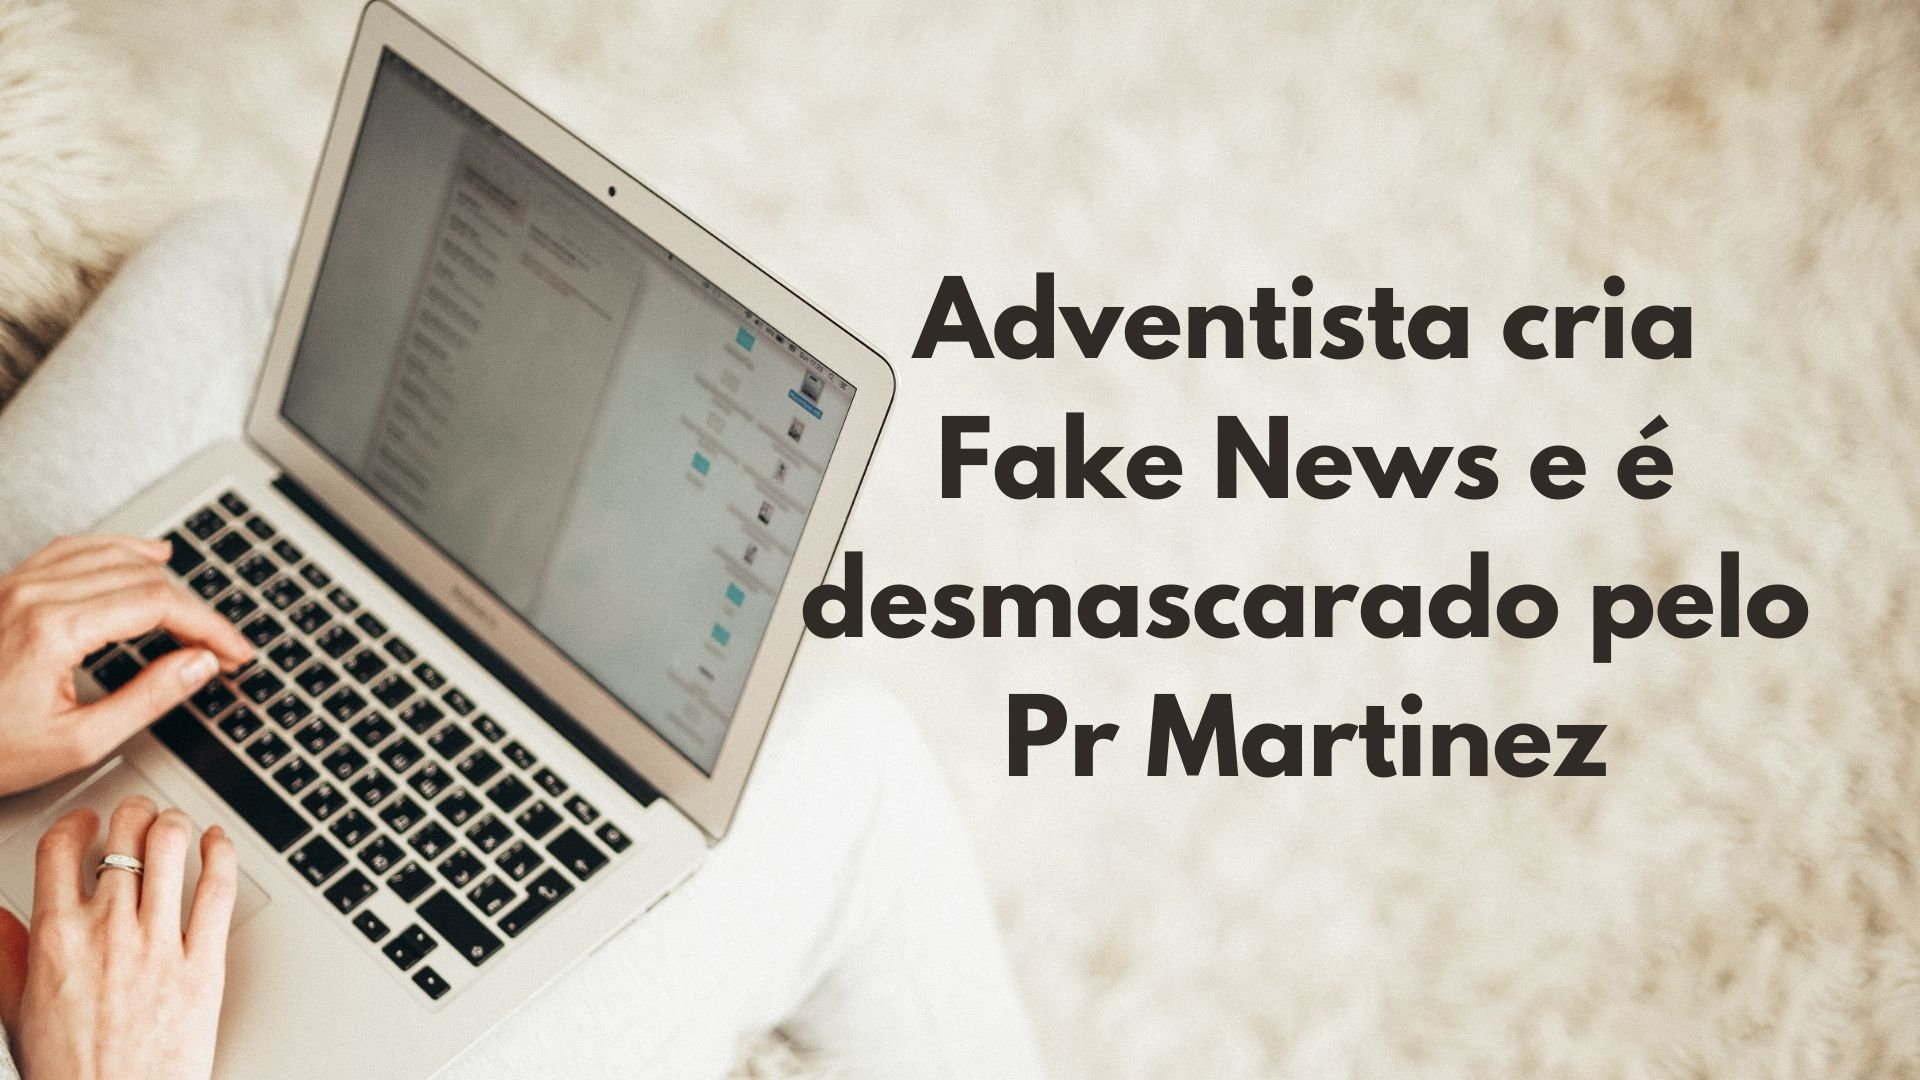 Adventista cria Fake News e é desmascarado